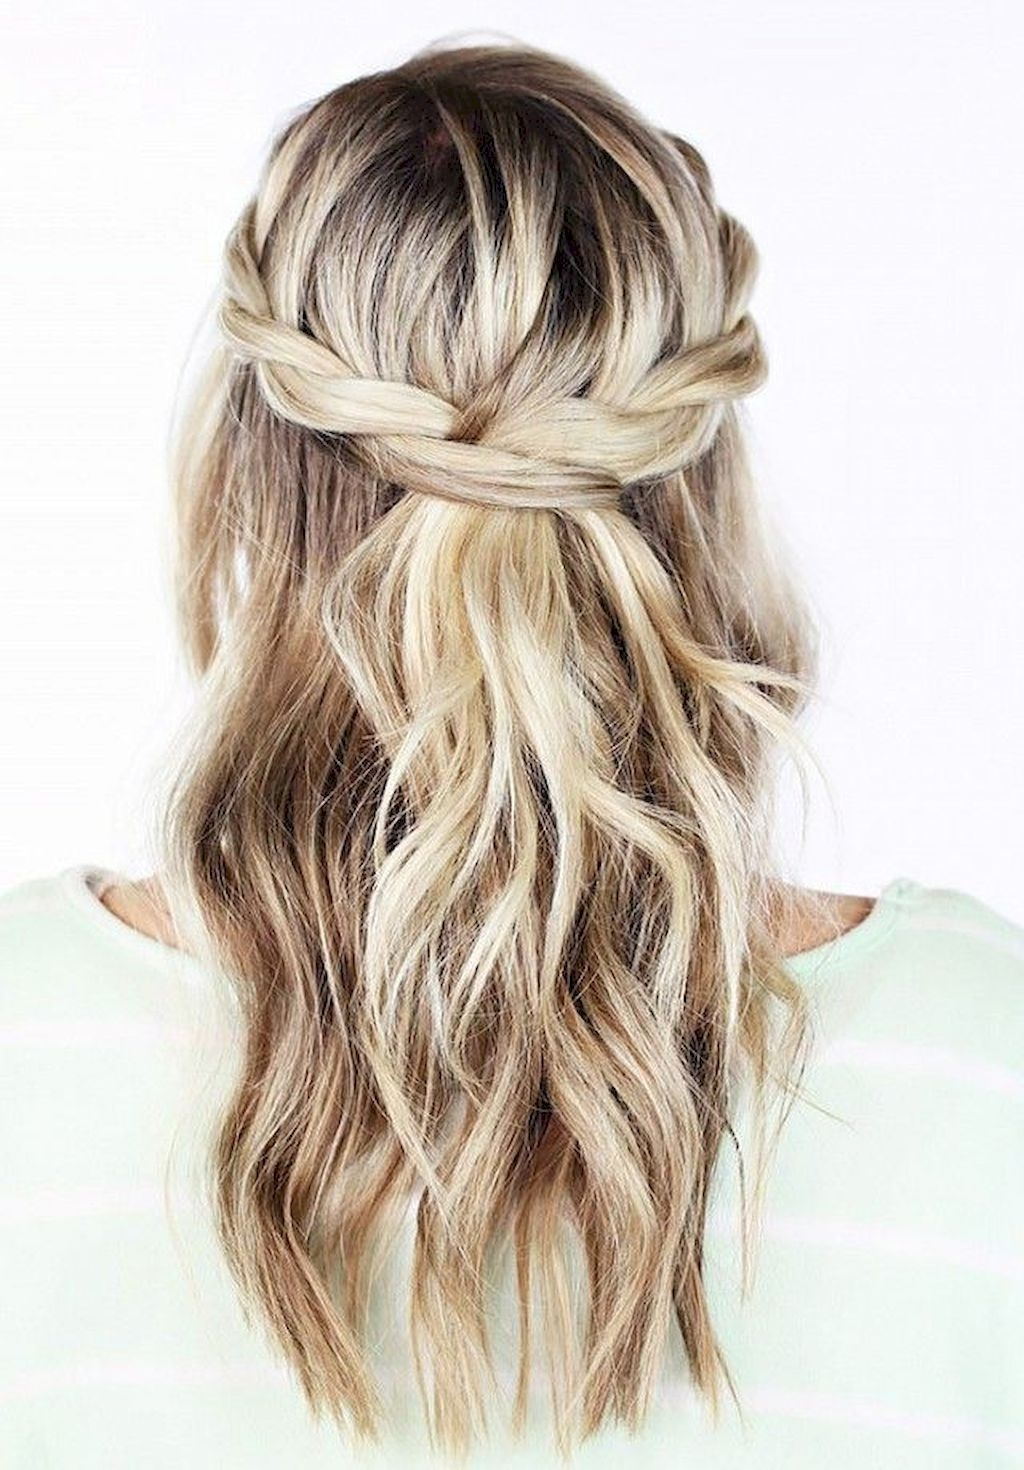 Popular Wedding Hairstyles For Long Layered Hair Pertaining To Cool 96 Bridal Wedding Hairstyles For Long Hair That Will Inspire (View 9 of 15)